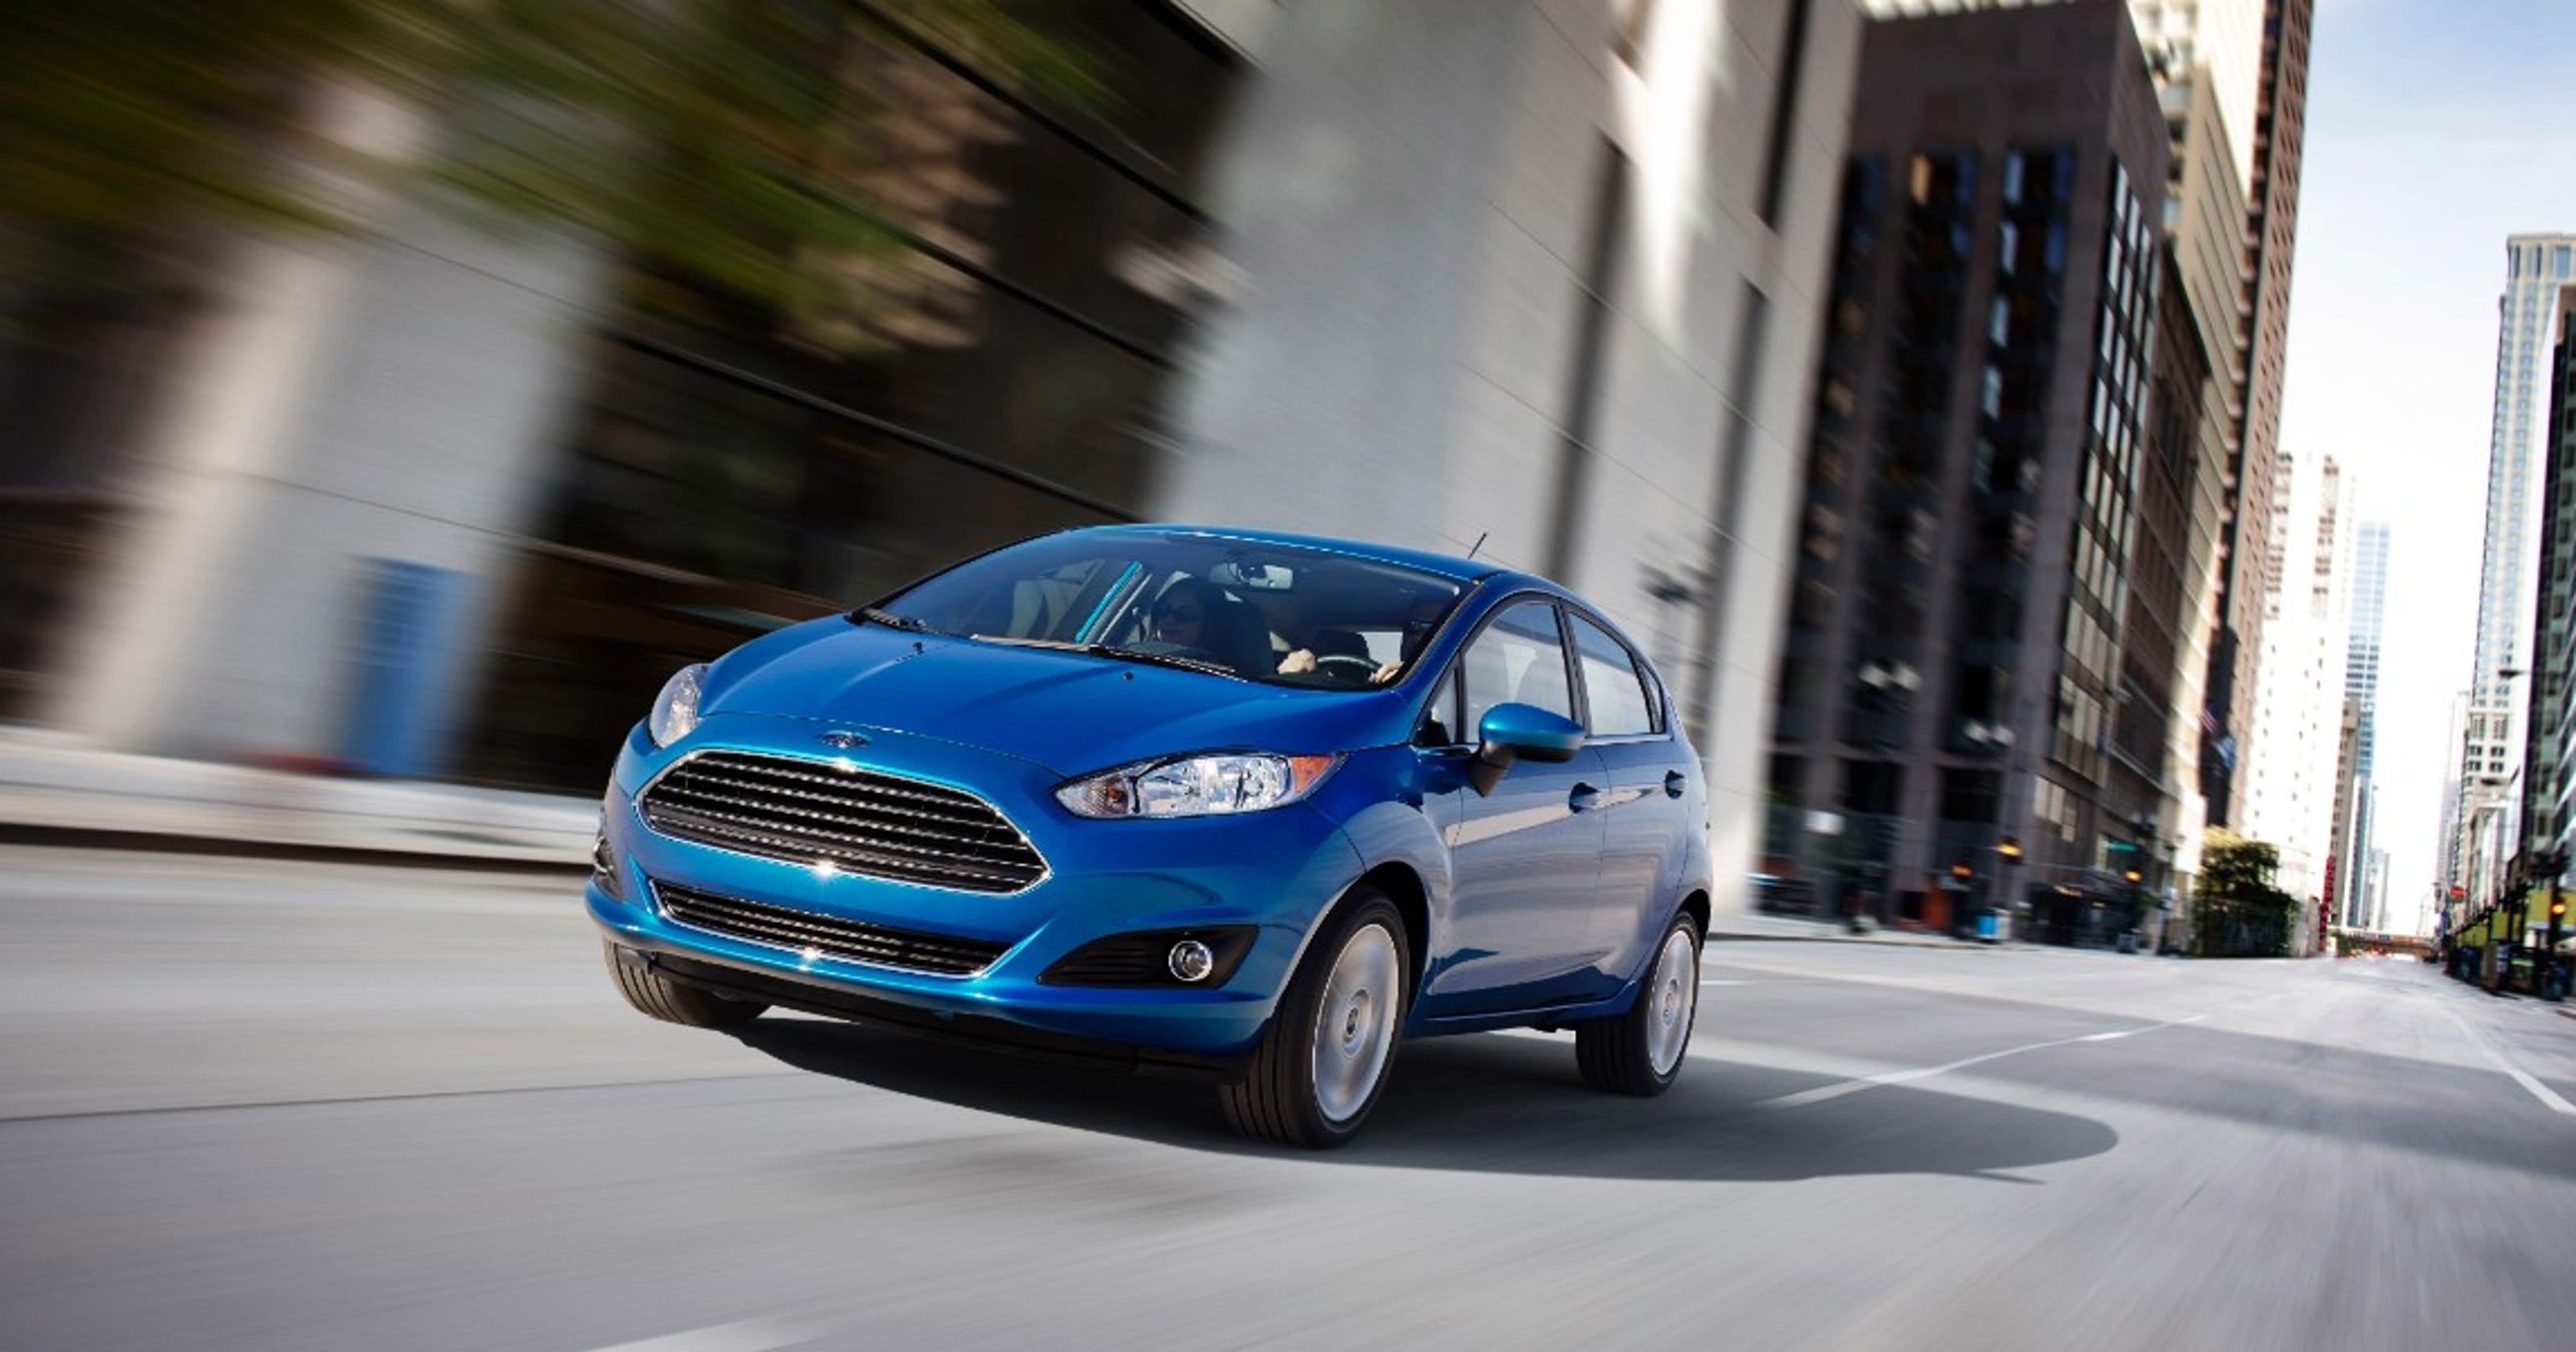 Auto review: 2014 Ford Fiesta EcoBoost will shatter 3-cylinder